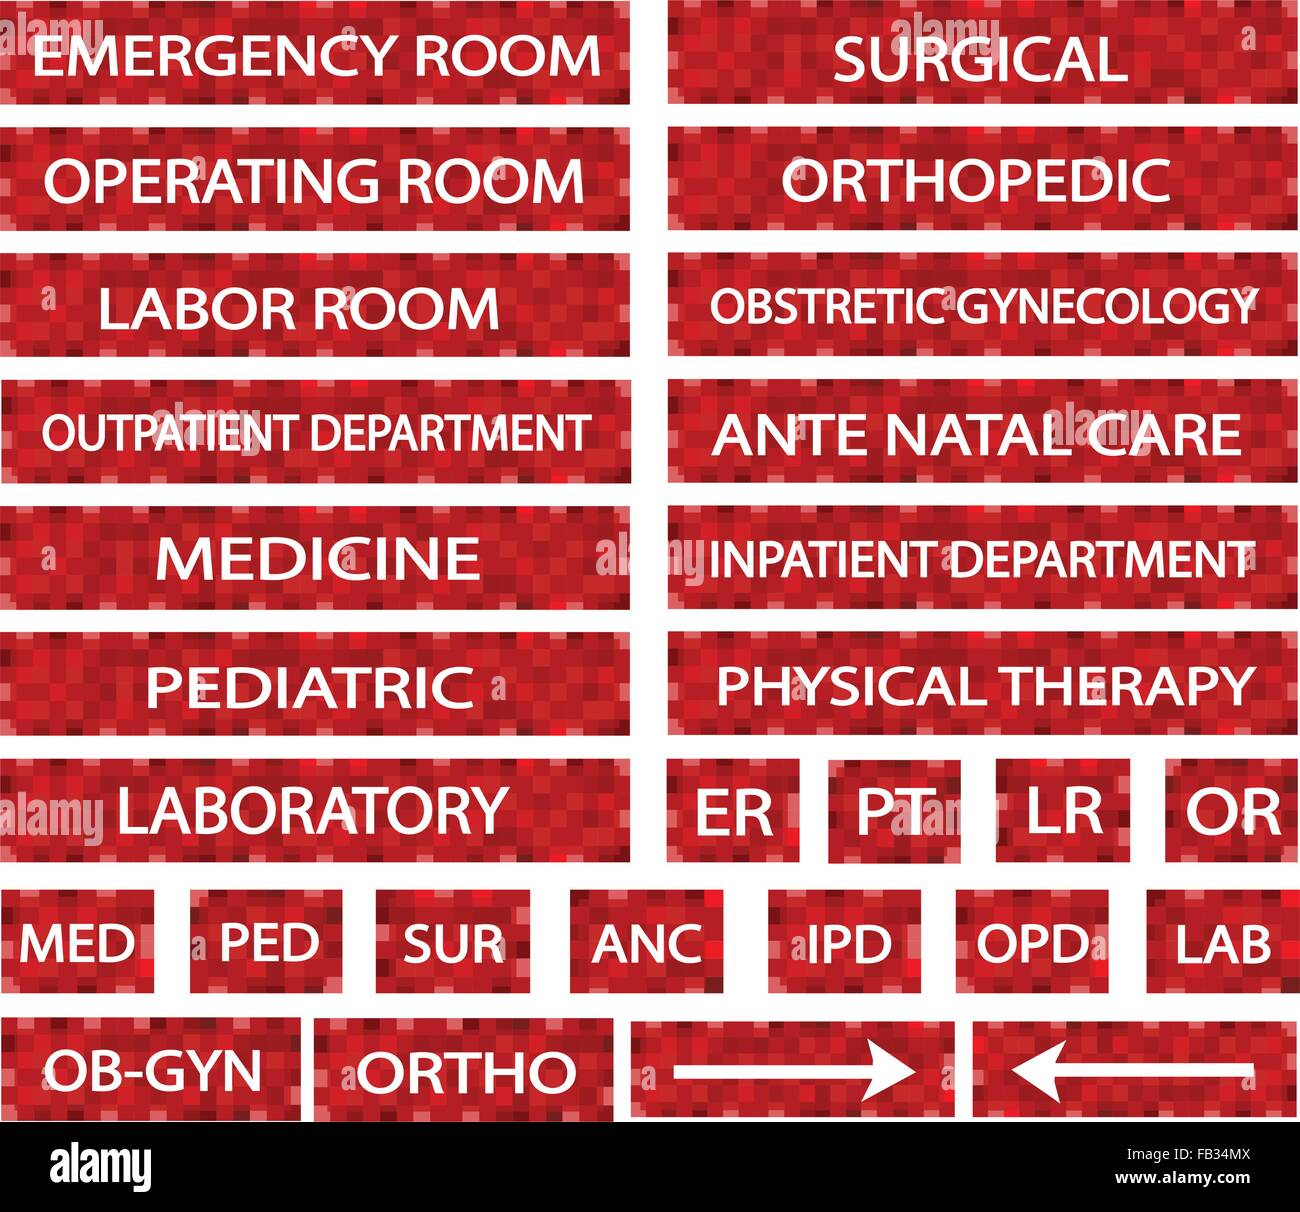 Hospital departments signs stock photos hospital departments illustration collection of hospital signs and medical abbreviations of different departments at a hospital in red sciox Images